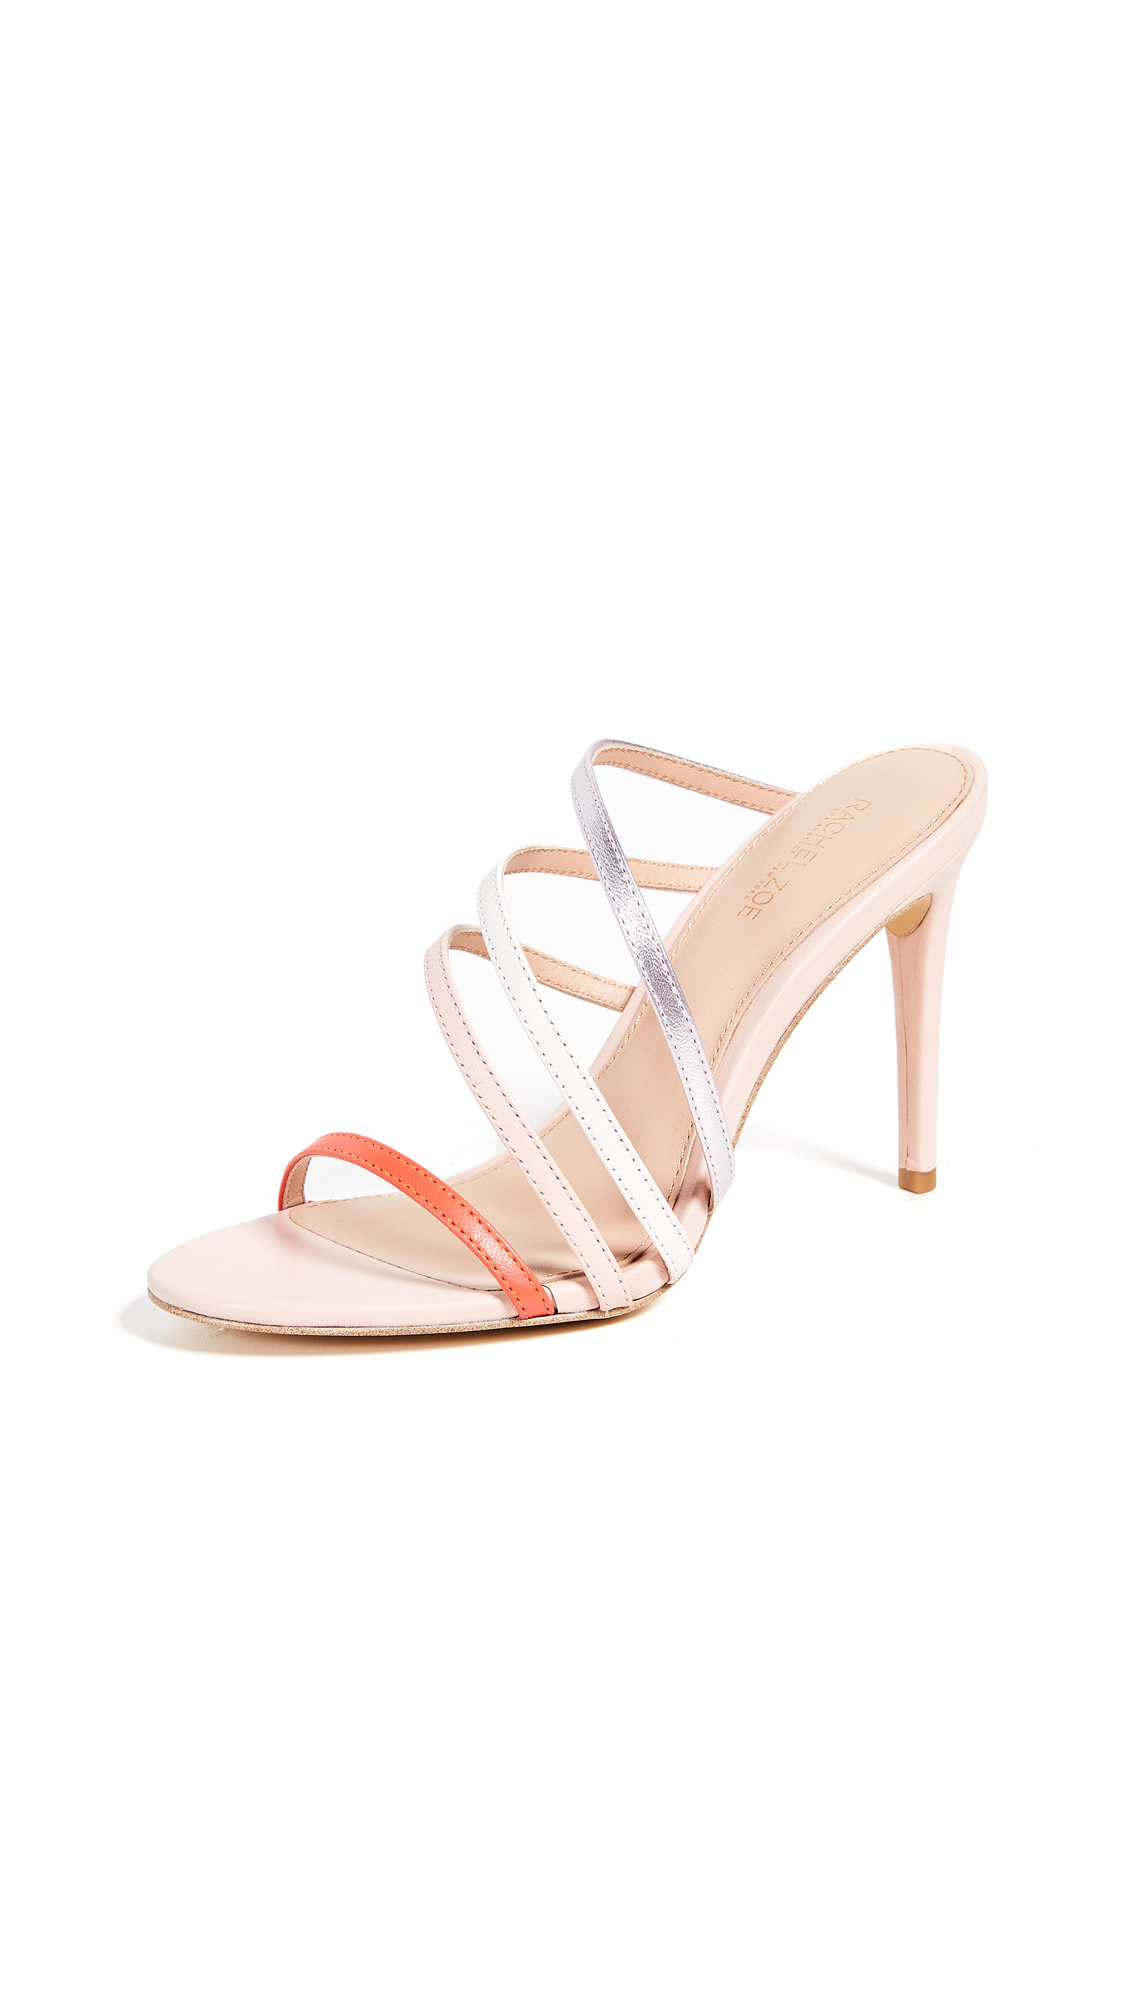 Rachel Zoe Hailey Asymmetrical Sandals - Kiss Multi